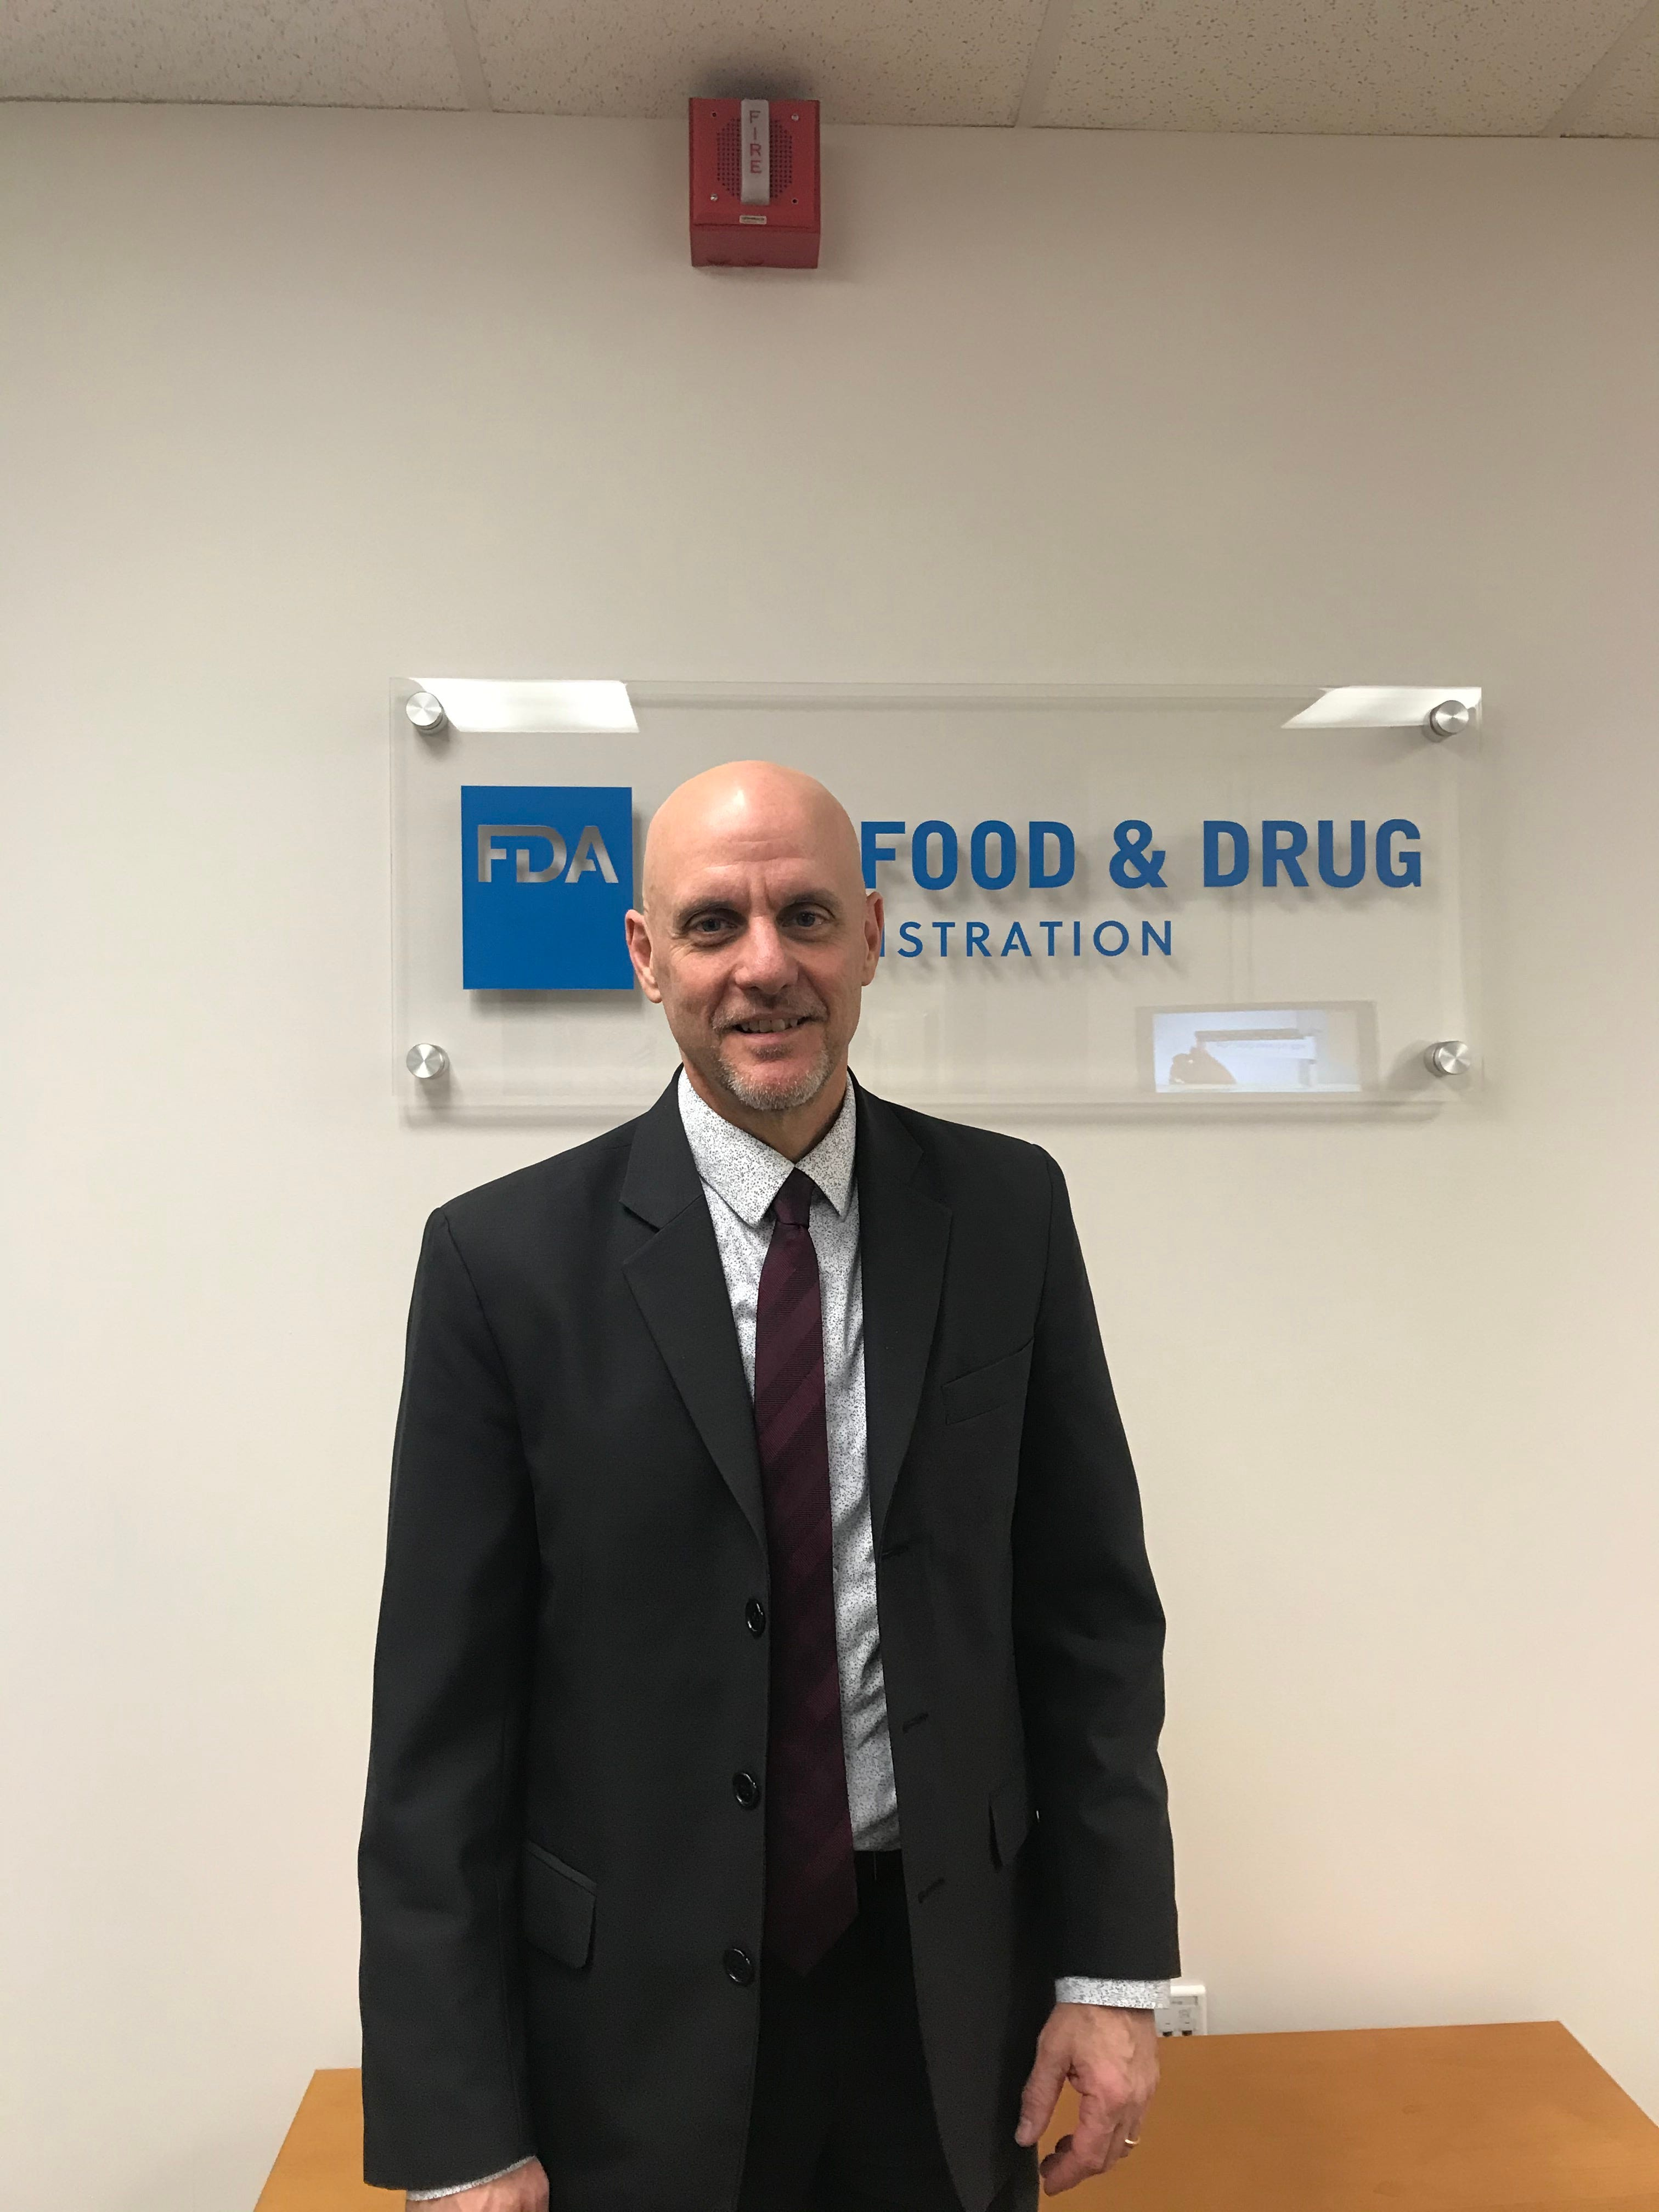 When might a COVID-19 vaccine be authorized? FDA Commissioner Stephen Hahn answers common questions